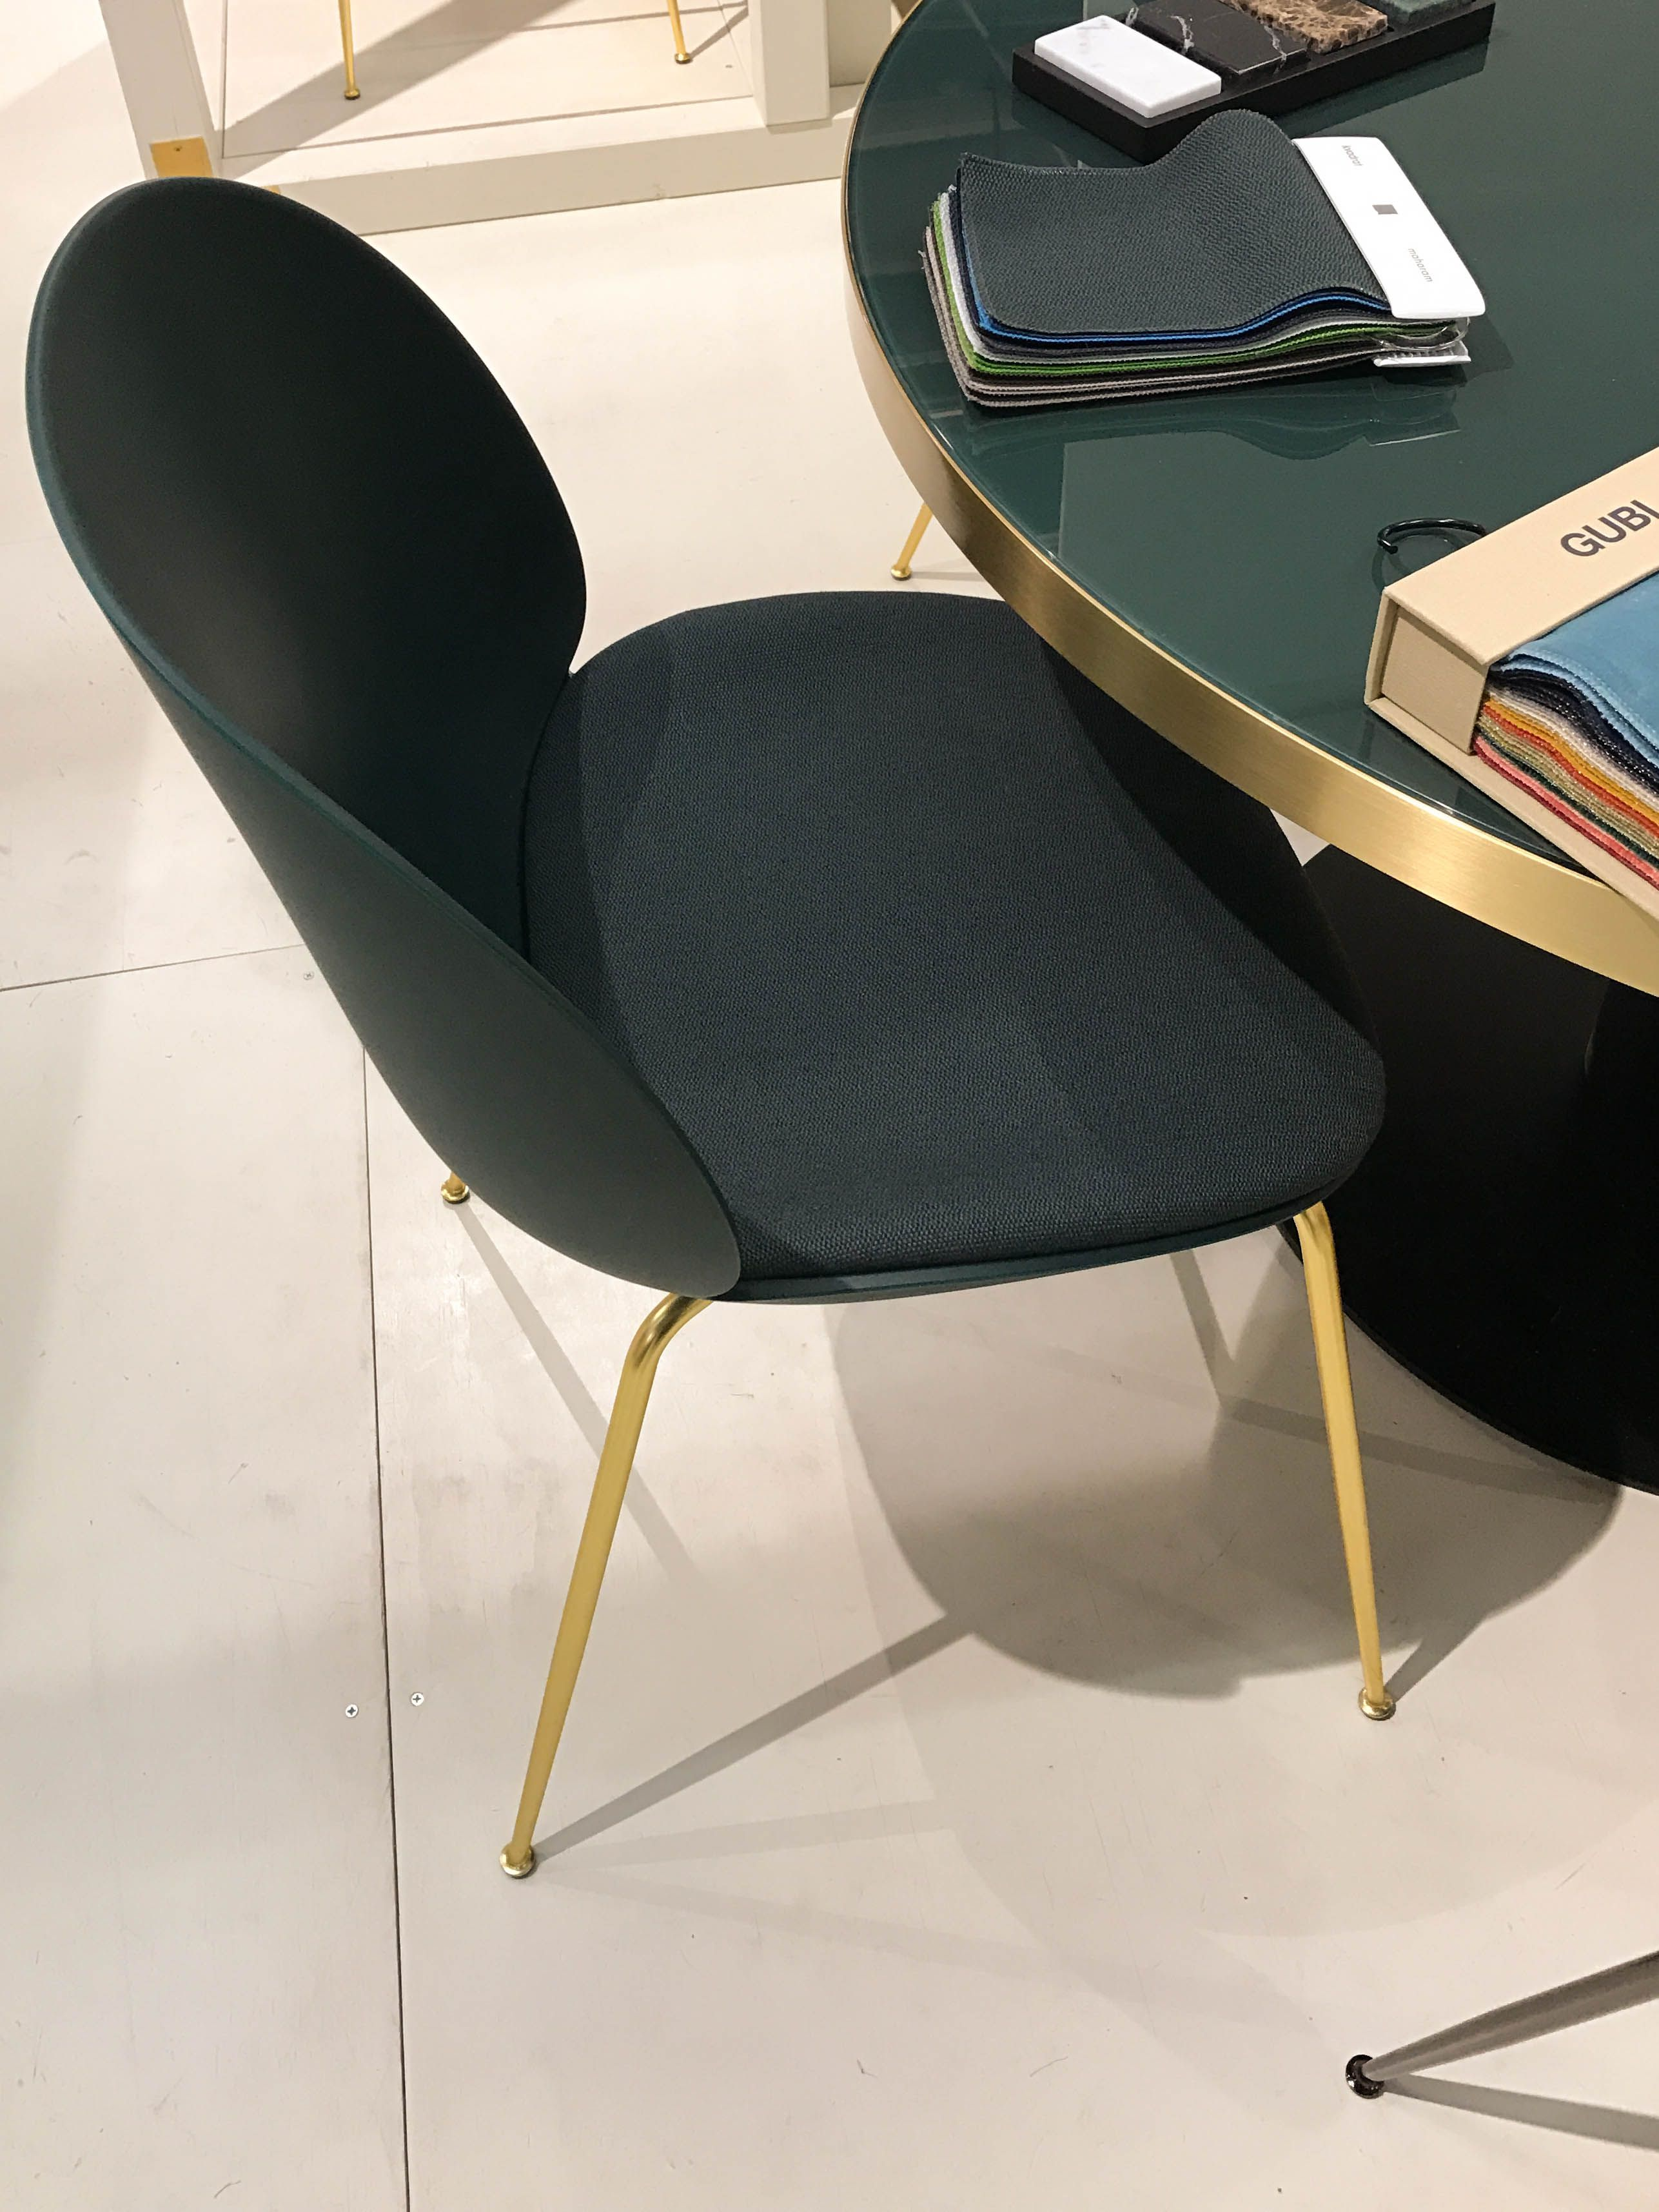 Beetle Chair Plastic Shell And Seat Upholstery By GamFratesi For Gubi